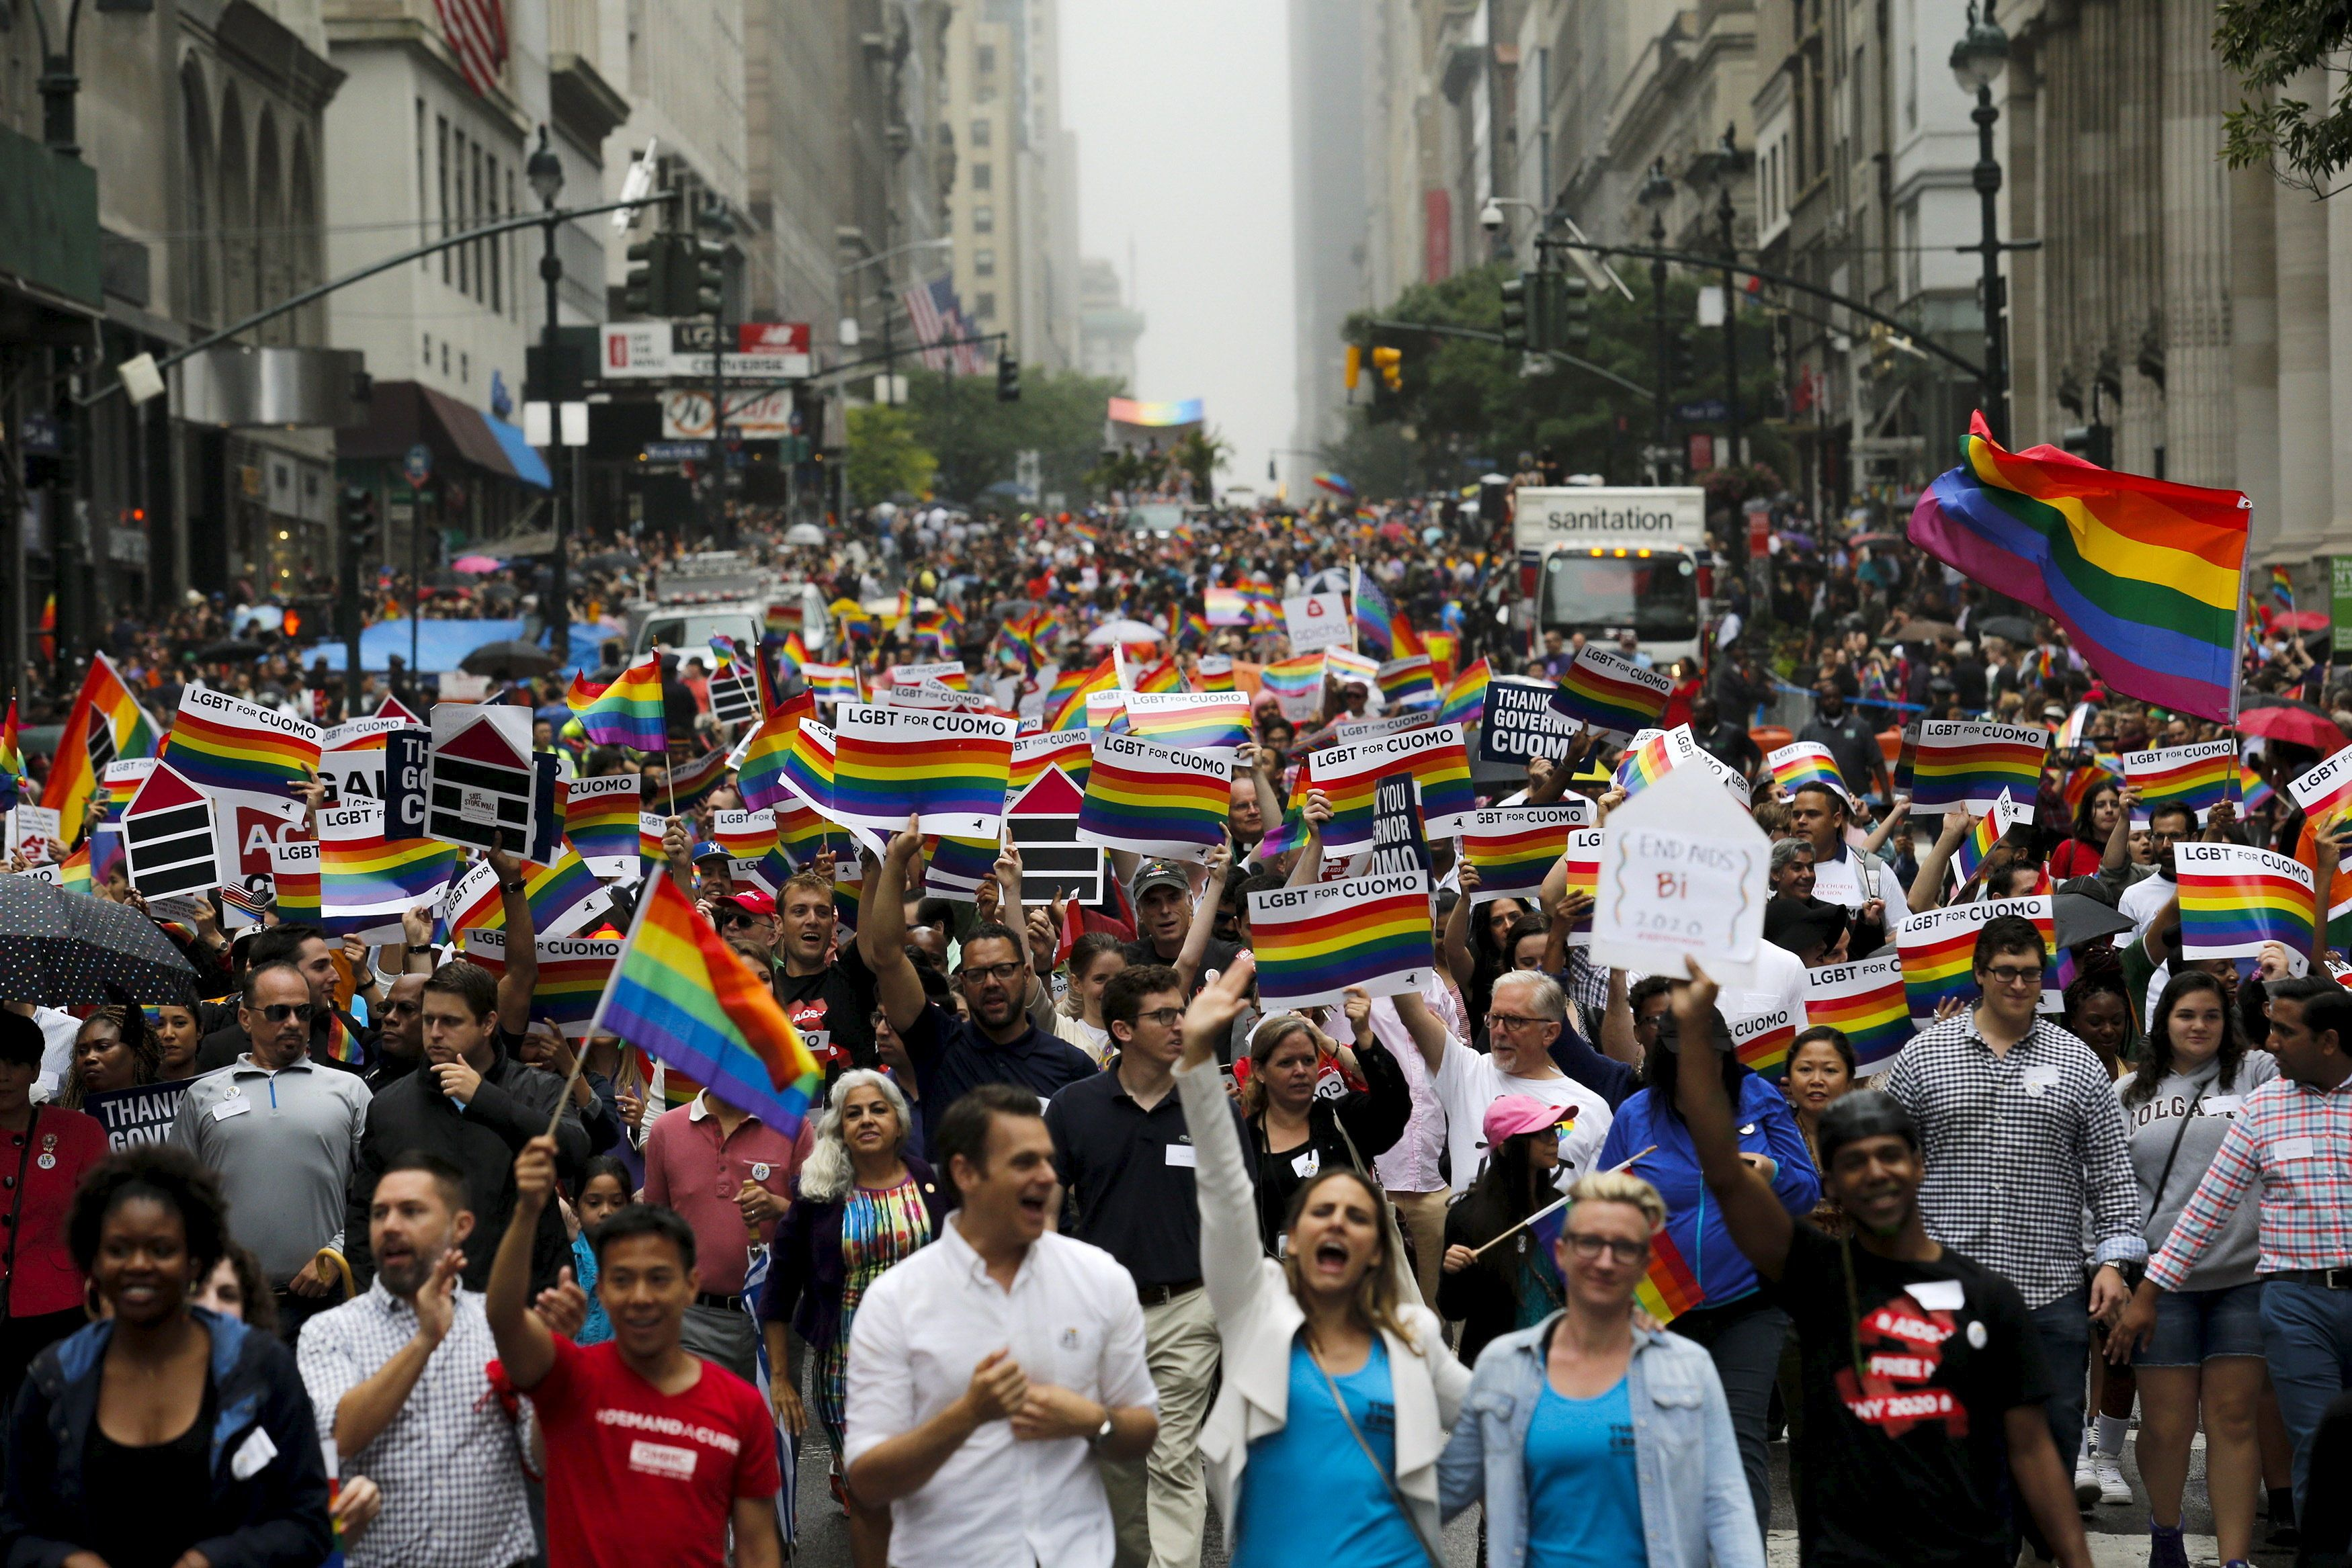 New York's 2017 LGBT Pride March will be broadcast on WABC-TV.